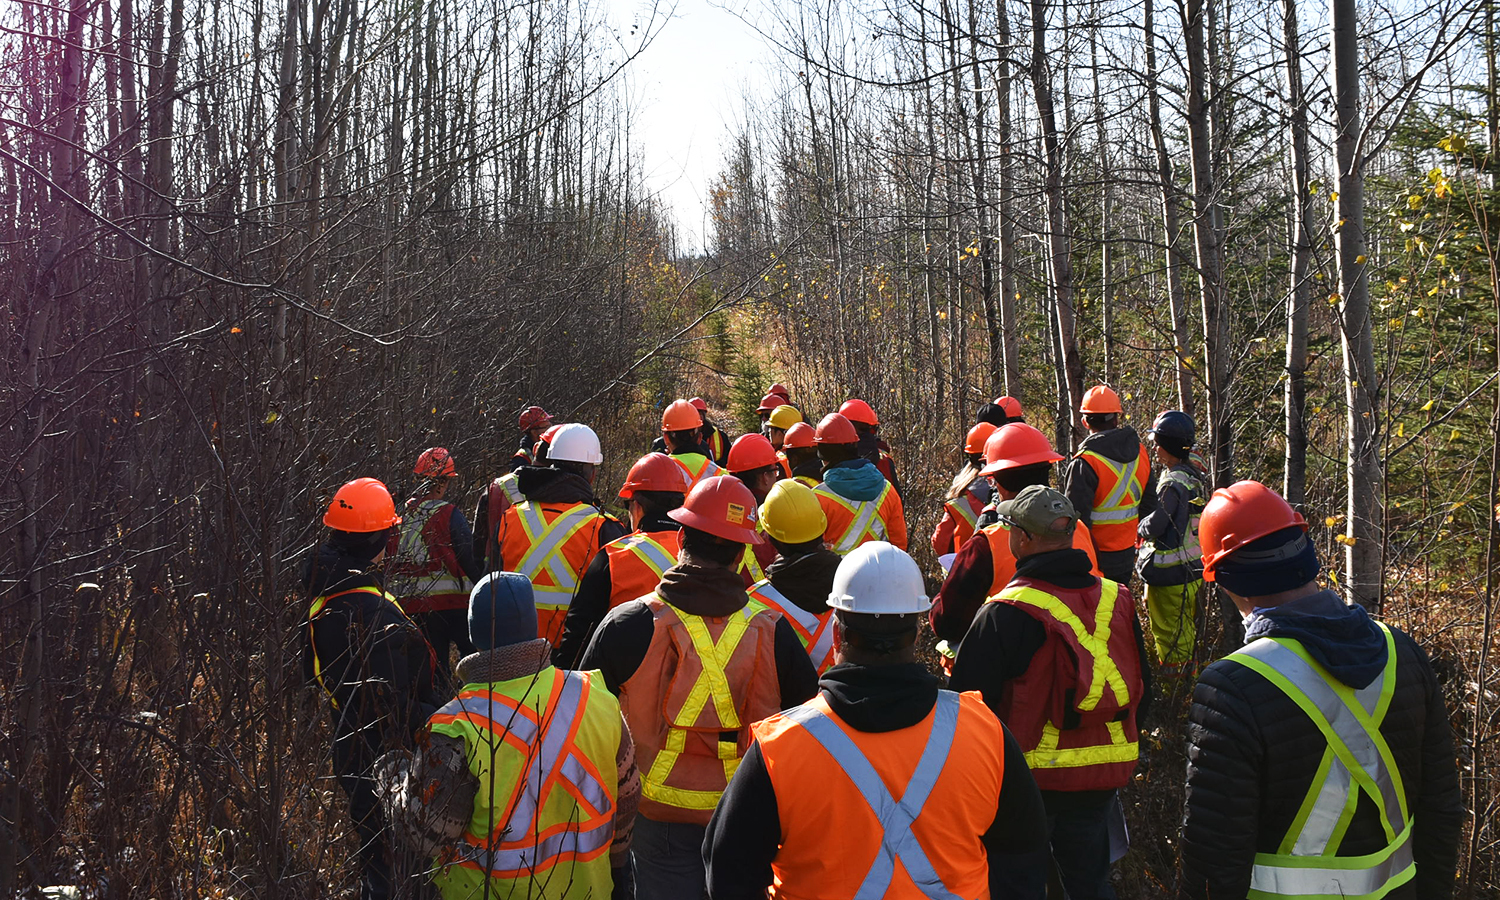 A group of workers in a forest